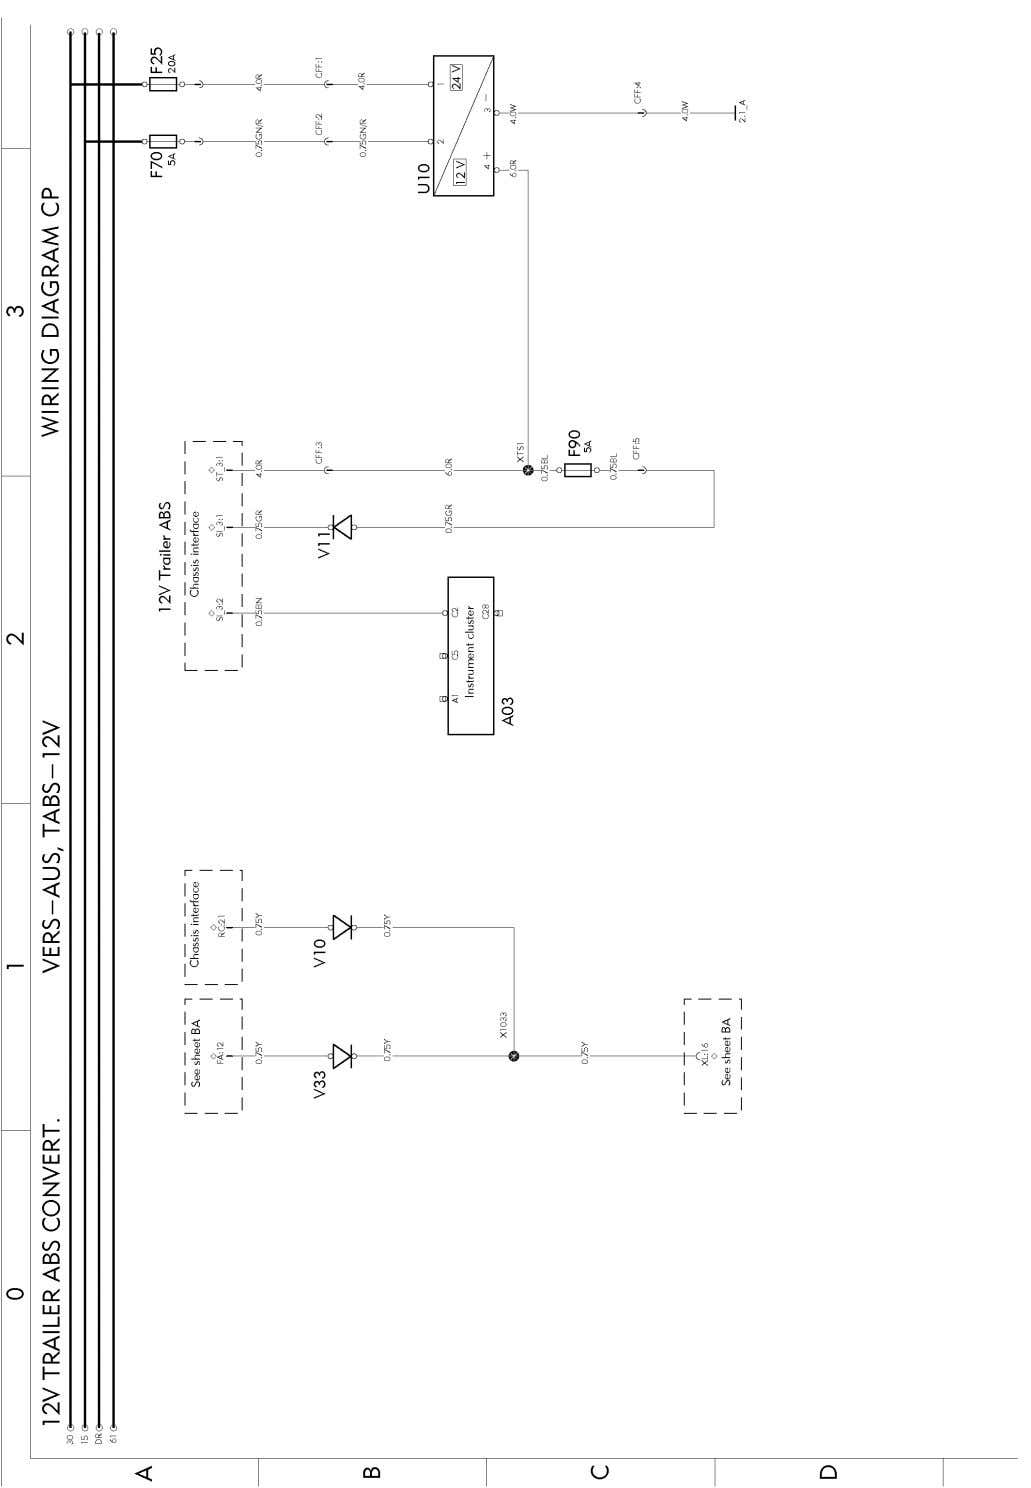 T3021443 Wiring diagram Page 31 (298)